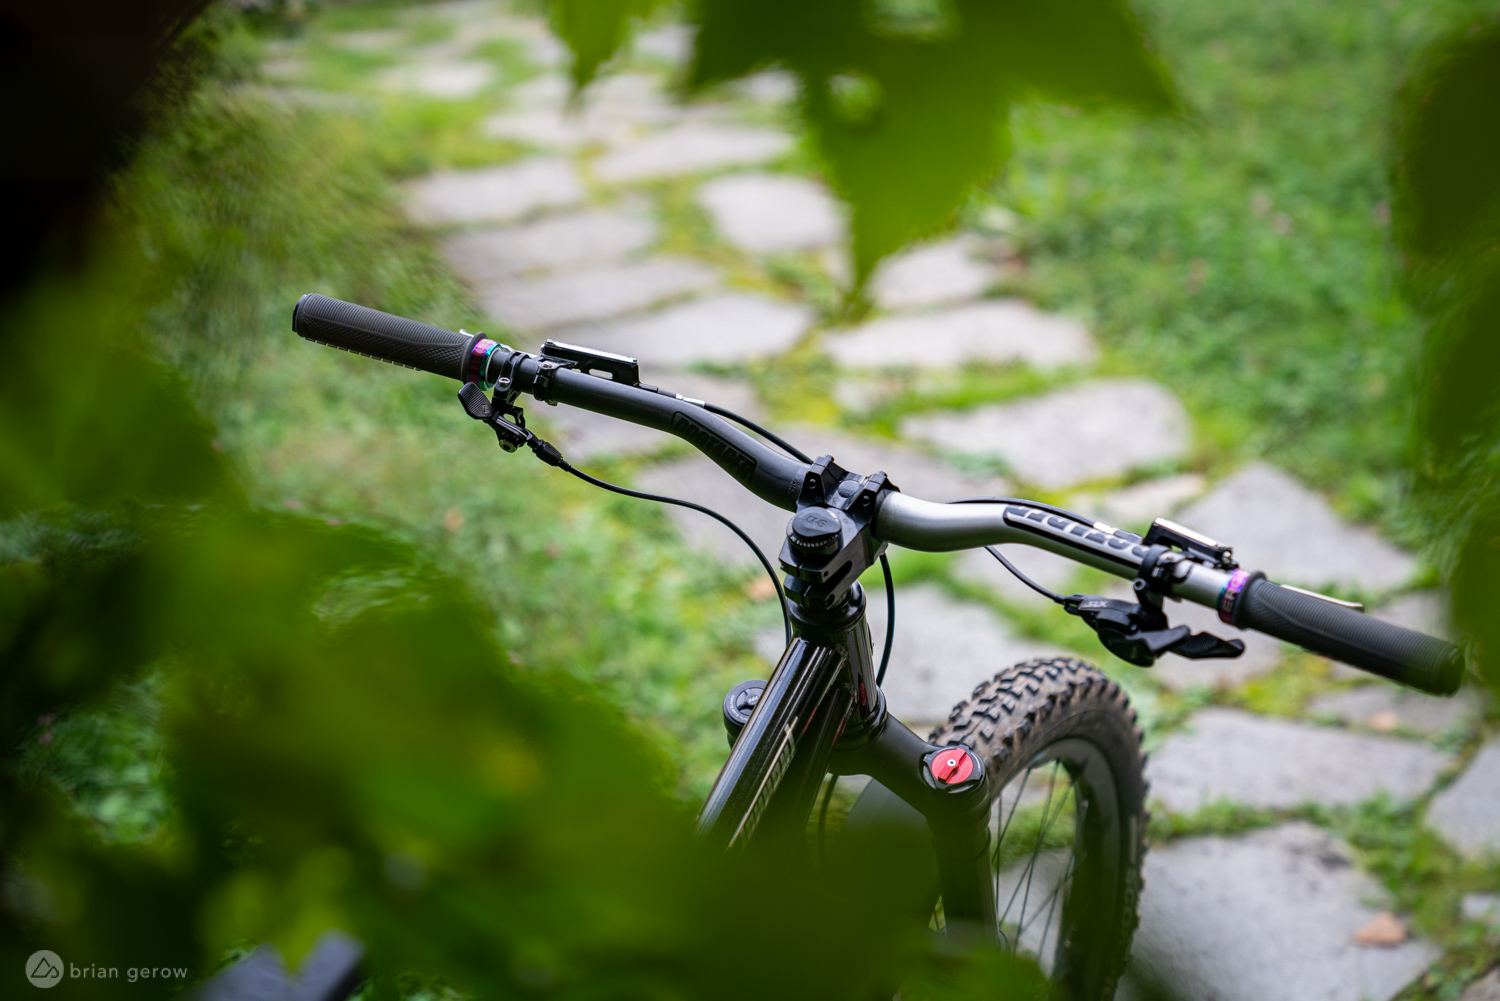 ProTaper 35mm and 31.8mm Clamp Diameter Carbon Handlebars Tested - Singletracks Mountain Bike News